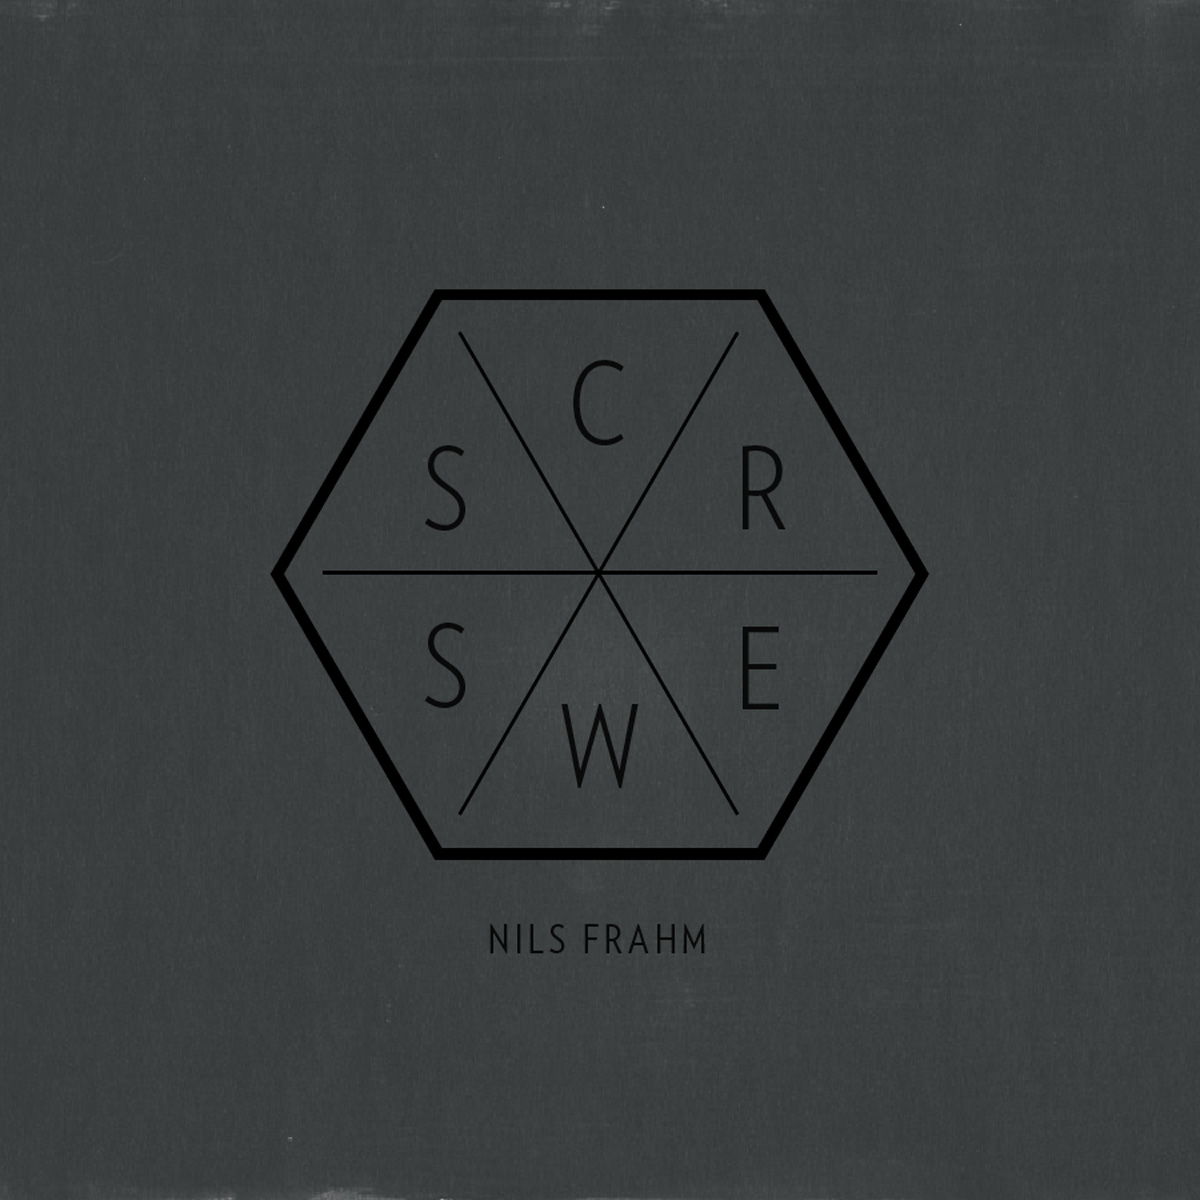 Song of the day: Nils Frahm – You [@nilsfrahm]